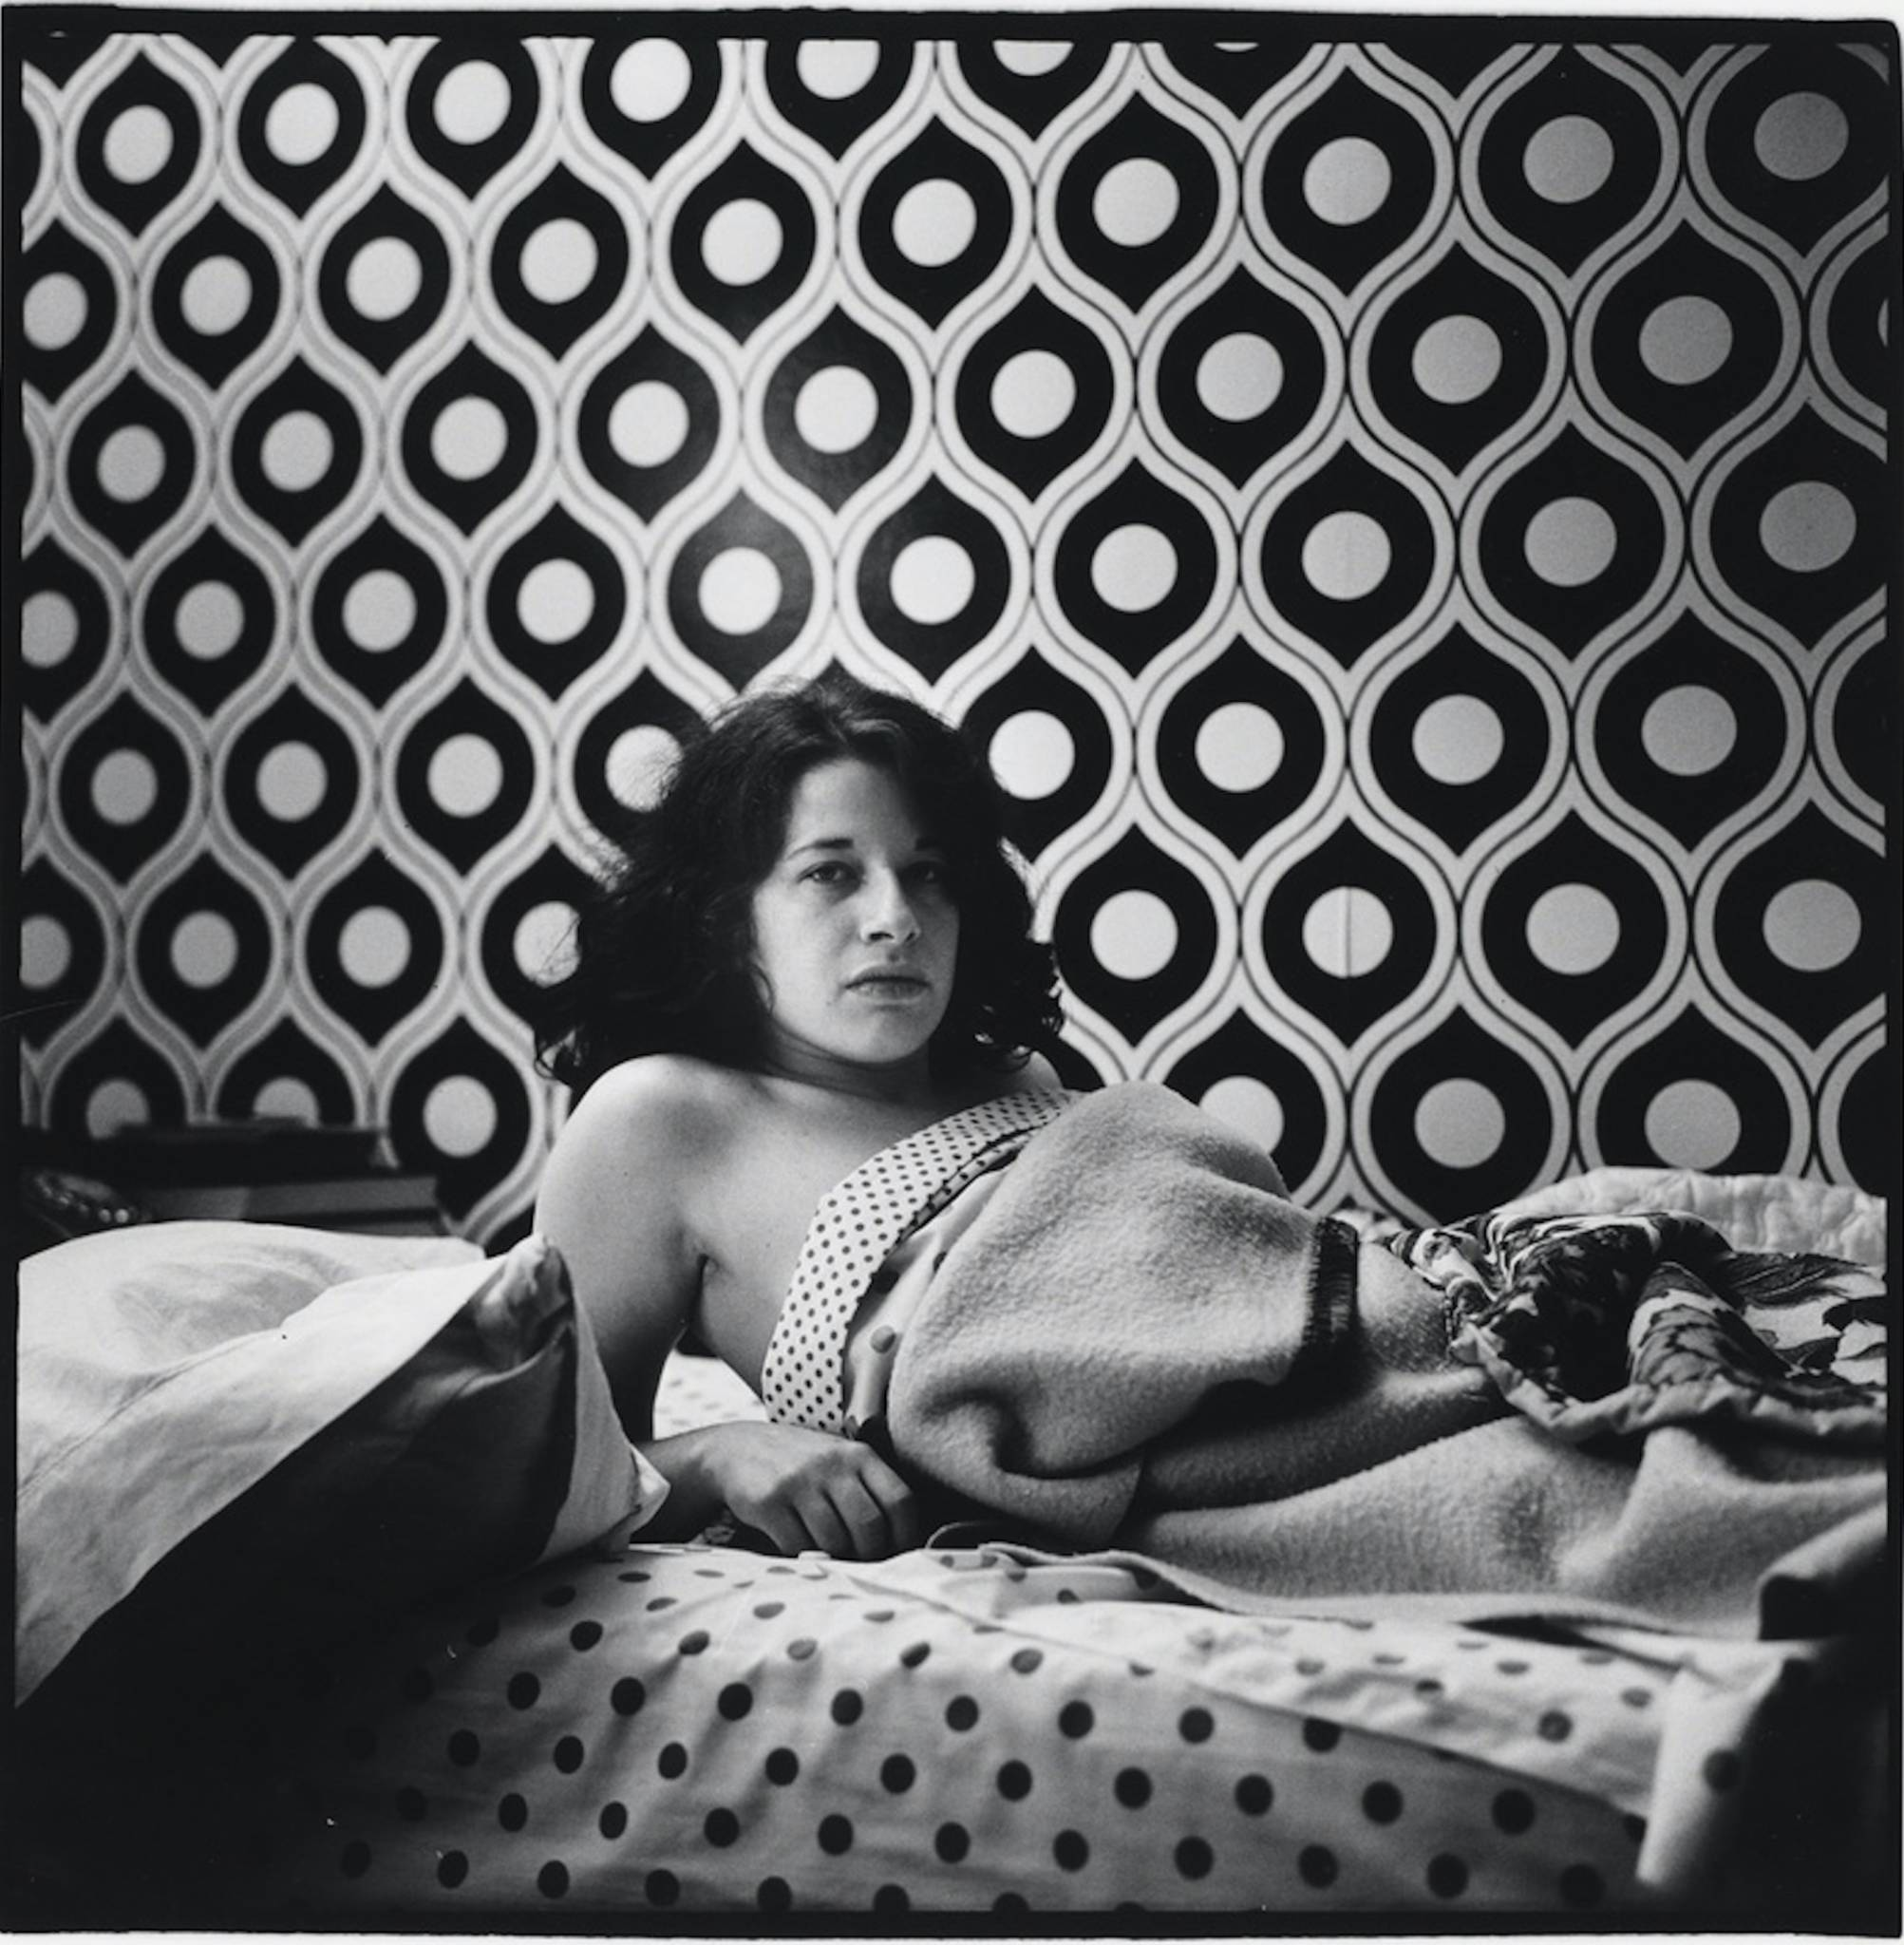 Peter Hujar, 'Fran Lebowitz at Home in Morristown, New Jersey,' 1974.